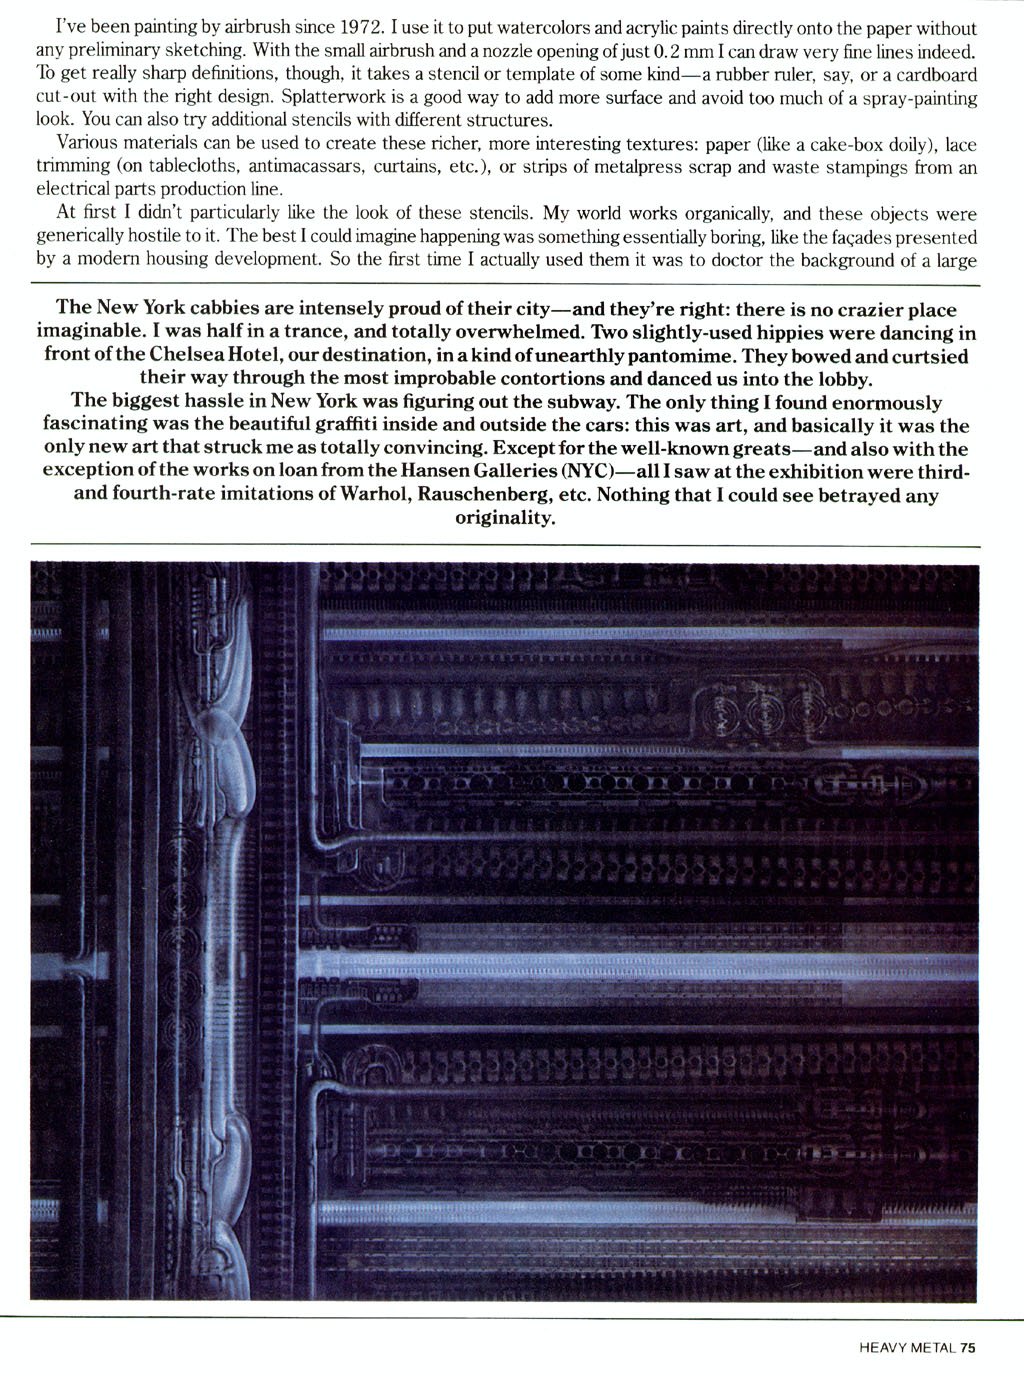 HEAVY METAL (June 1982) Blade Runner HRG_NYC3